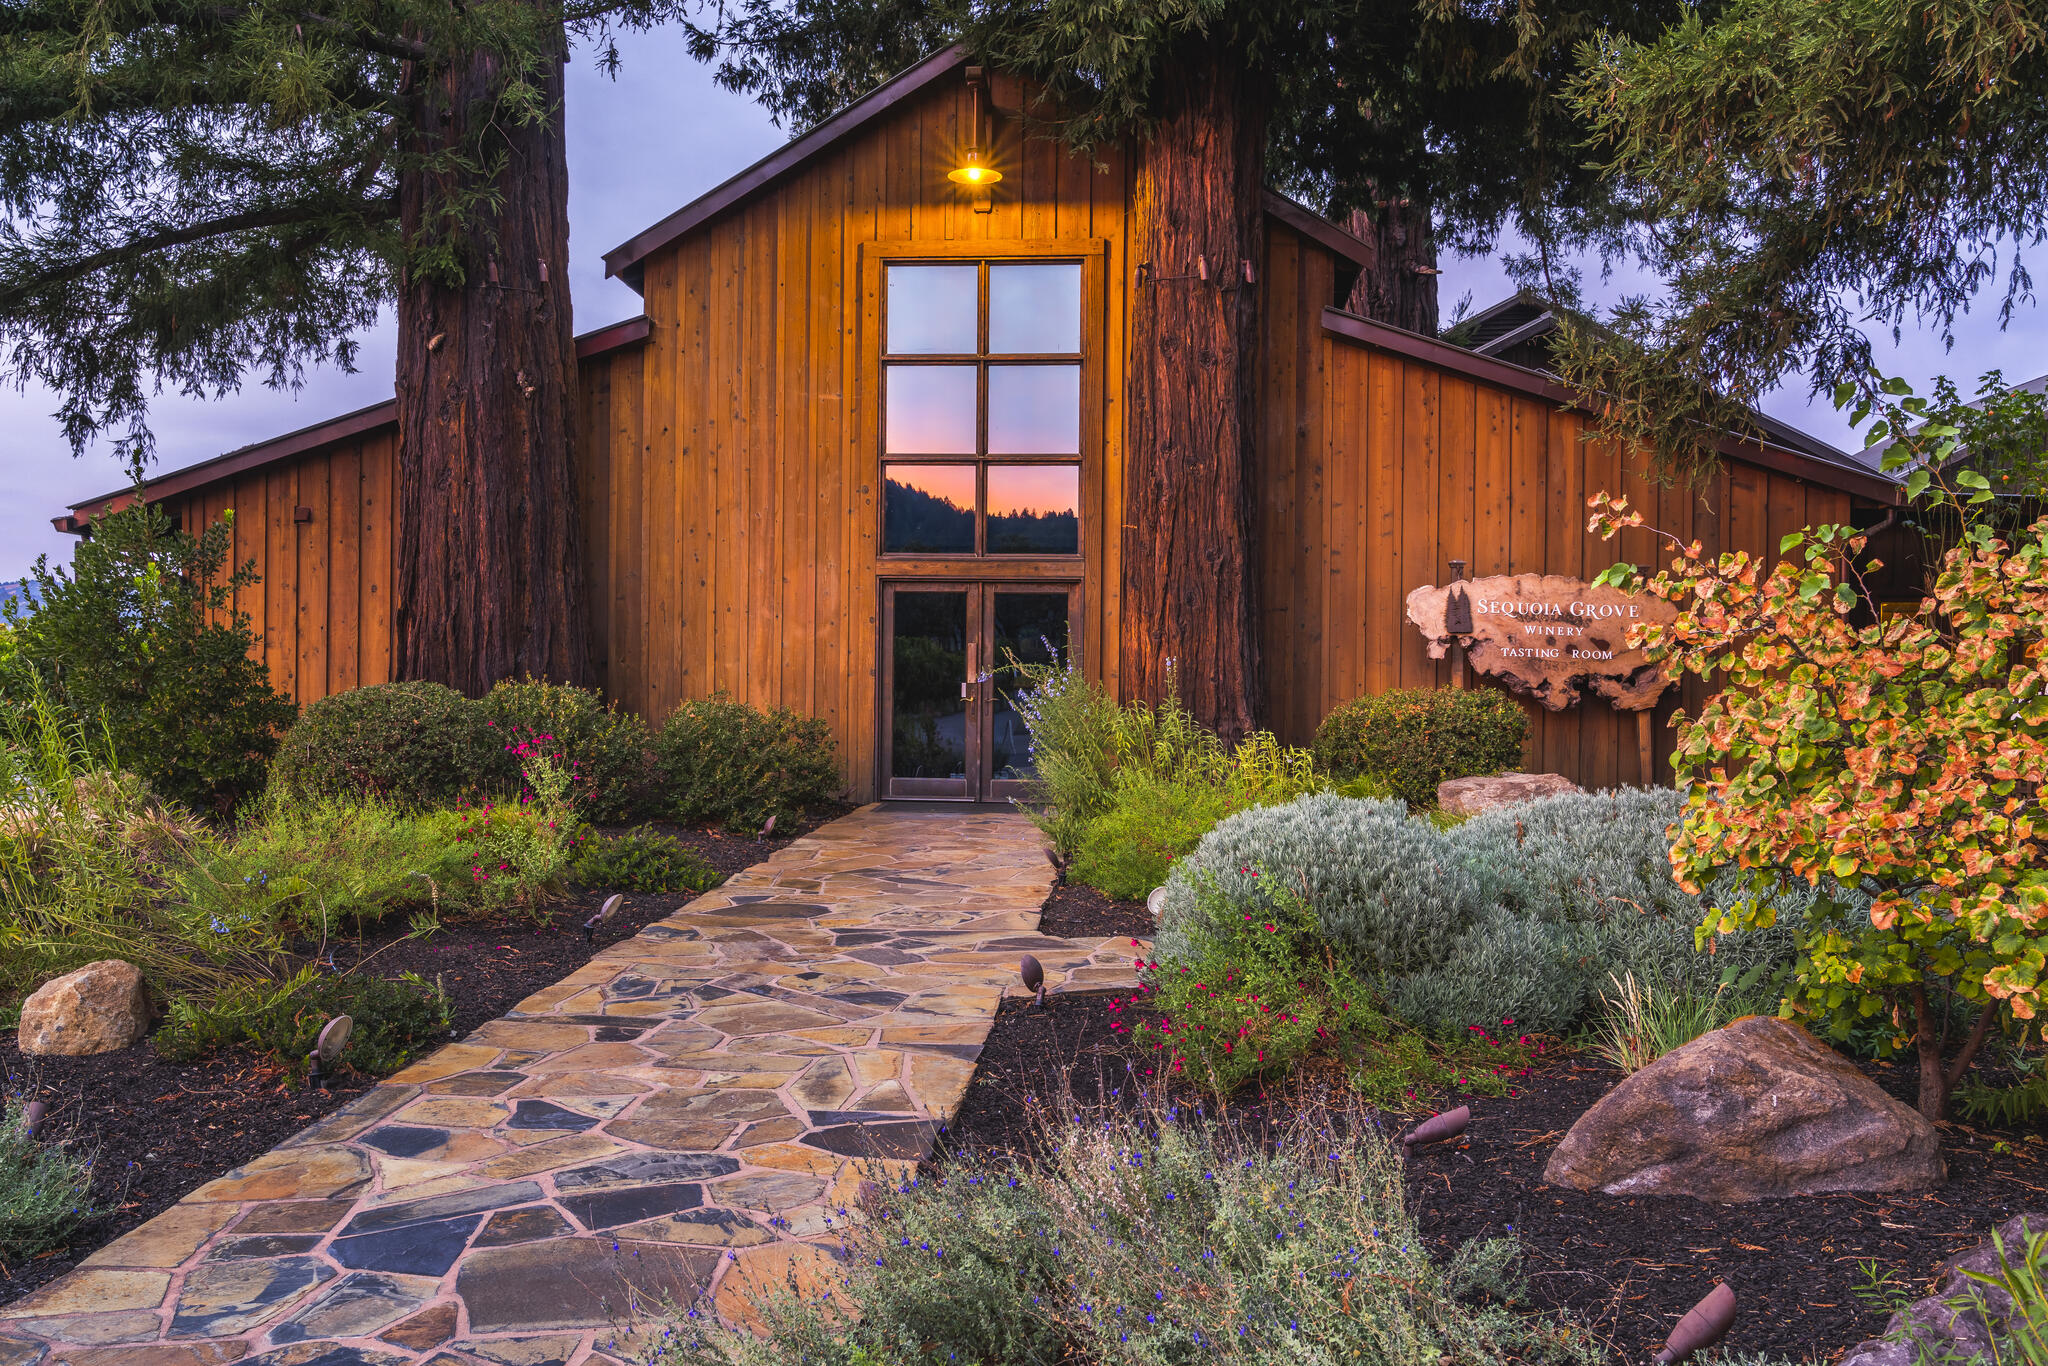 Sequoia Grove Winery Cover Image